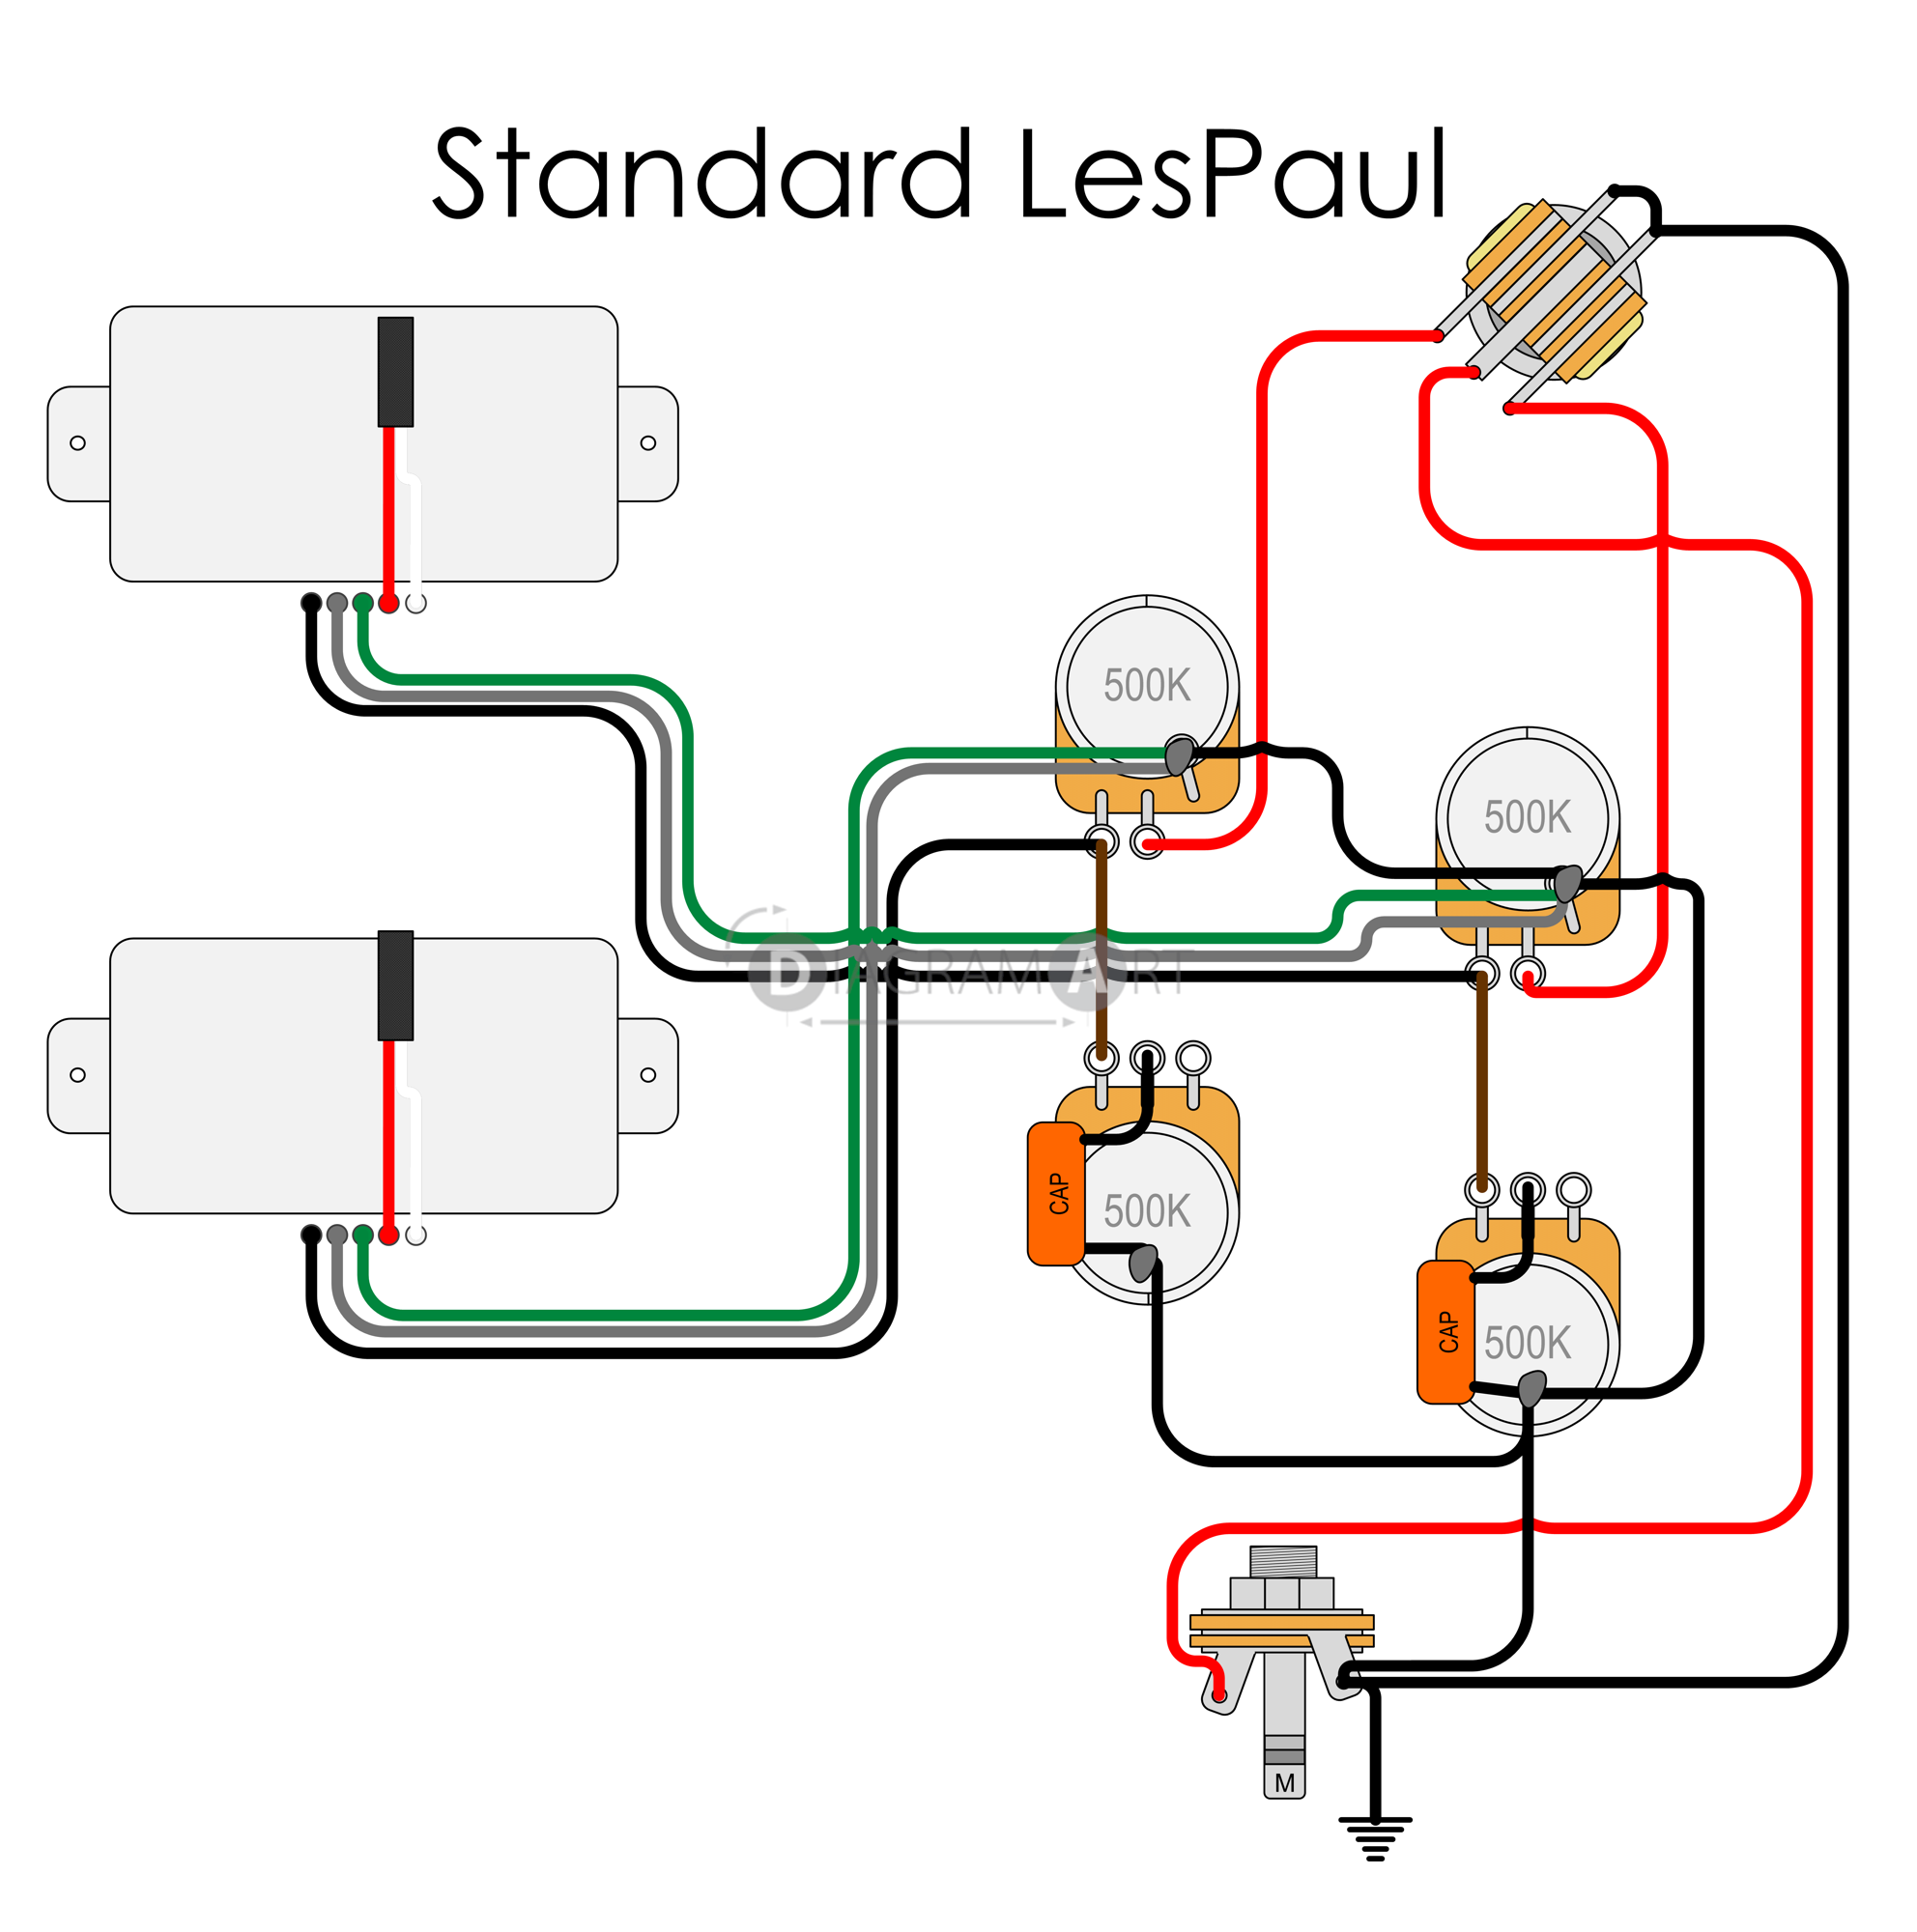 2012 Les Paul Standard Wiring Expert Schematics Diagram Gibson Bfg Detailed Schematic Diagrams Jack